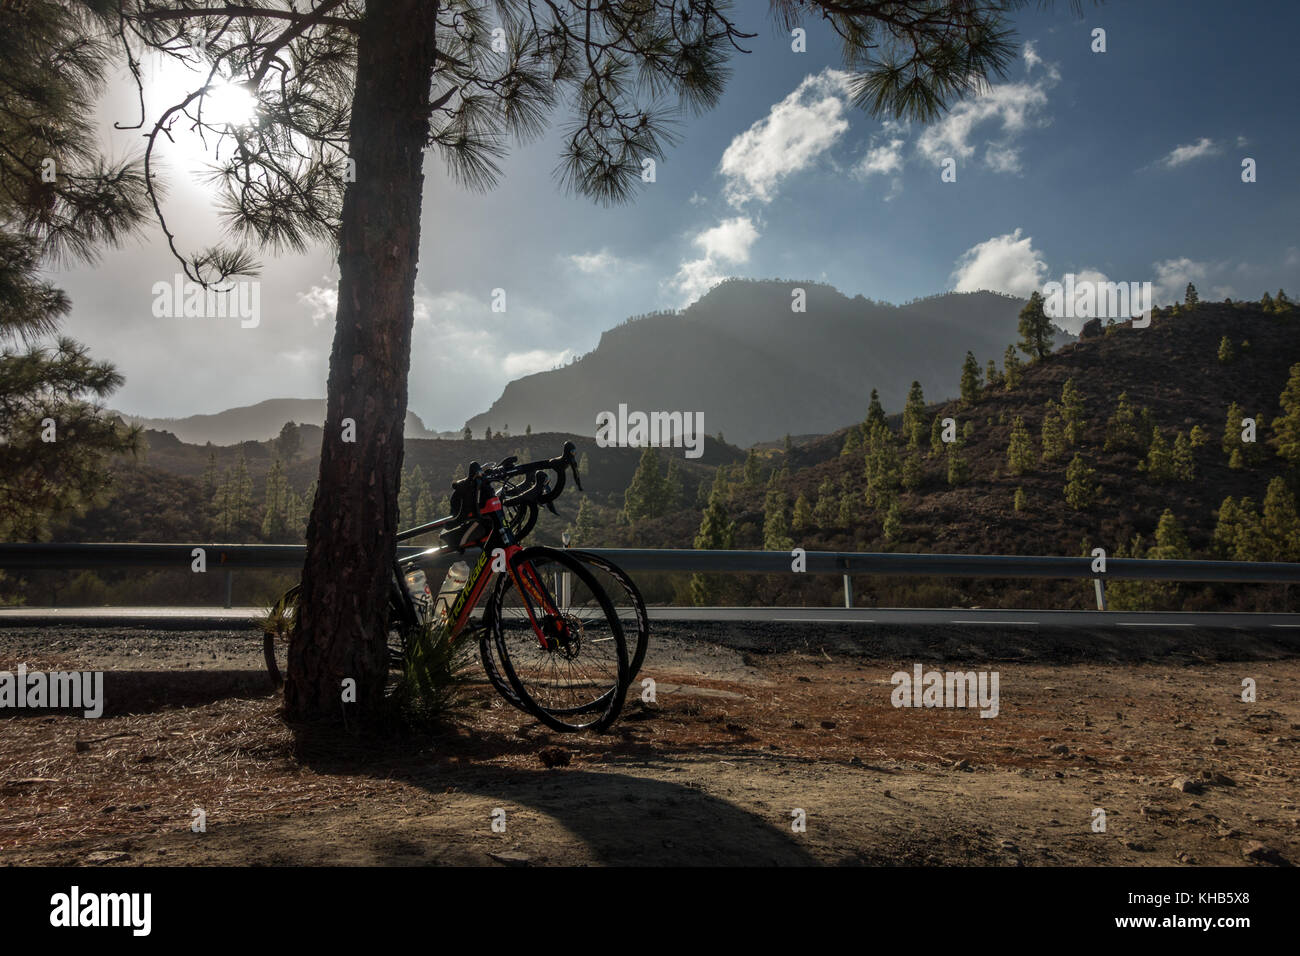 Mountain views inland with two bikes resting against a tree next to the road, Gran Canaria, Canary Islands - Stock Image